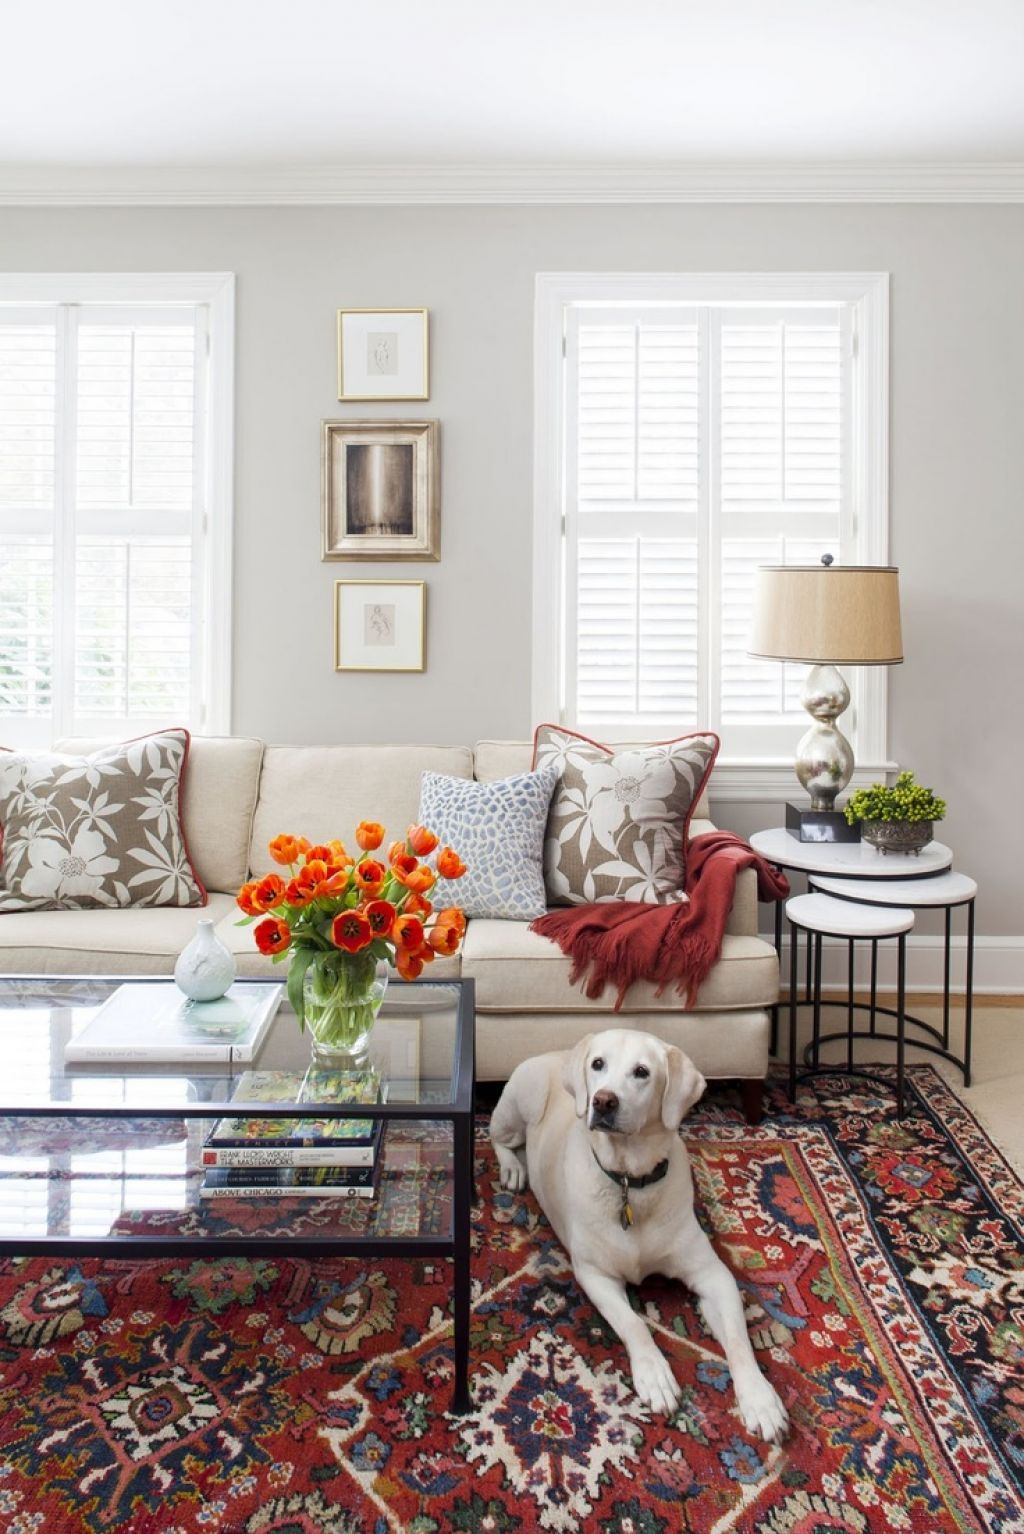 Amazing Decorative Turkish Rugs in 2020 | Rugs in living ...